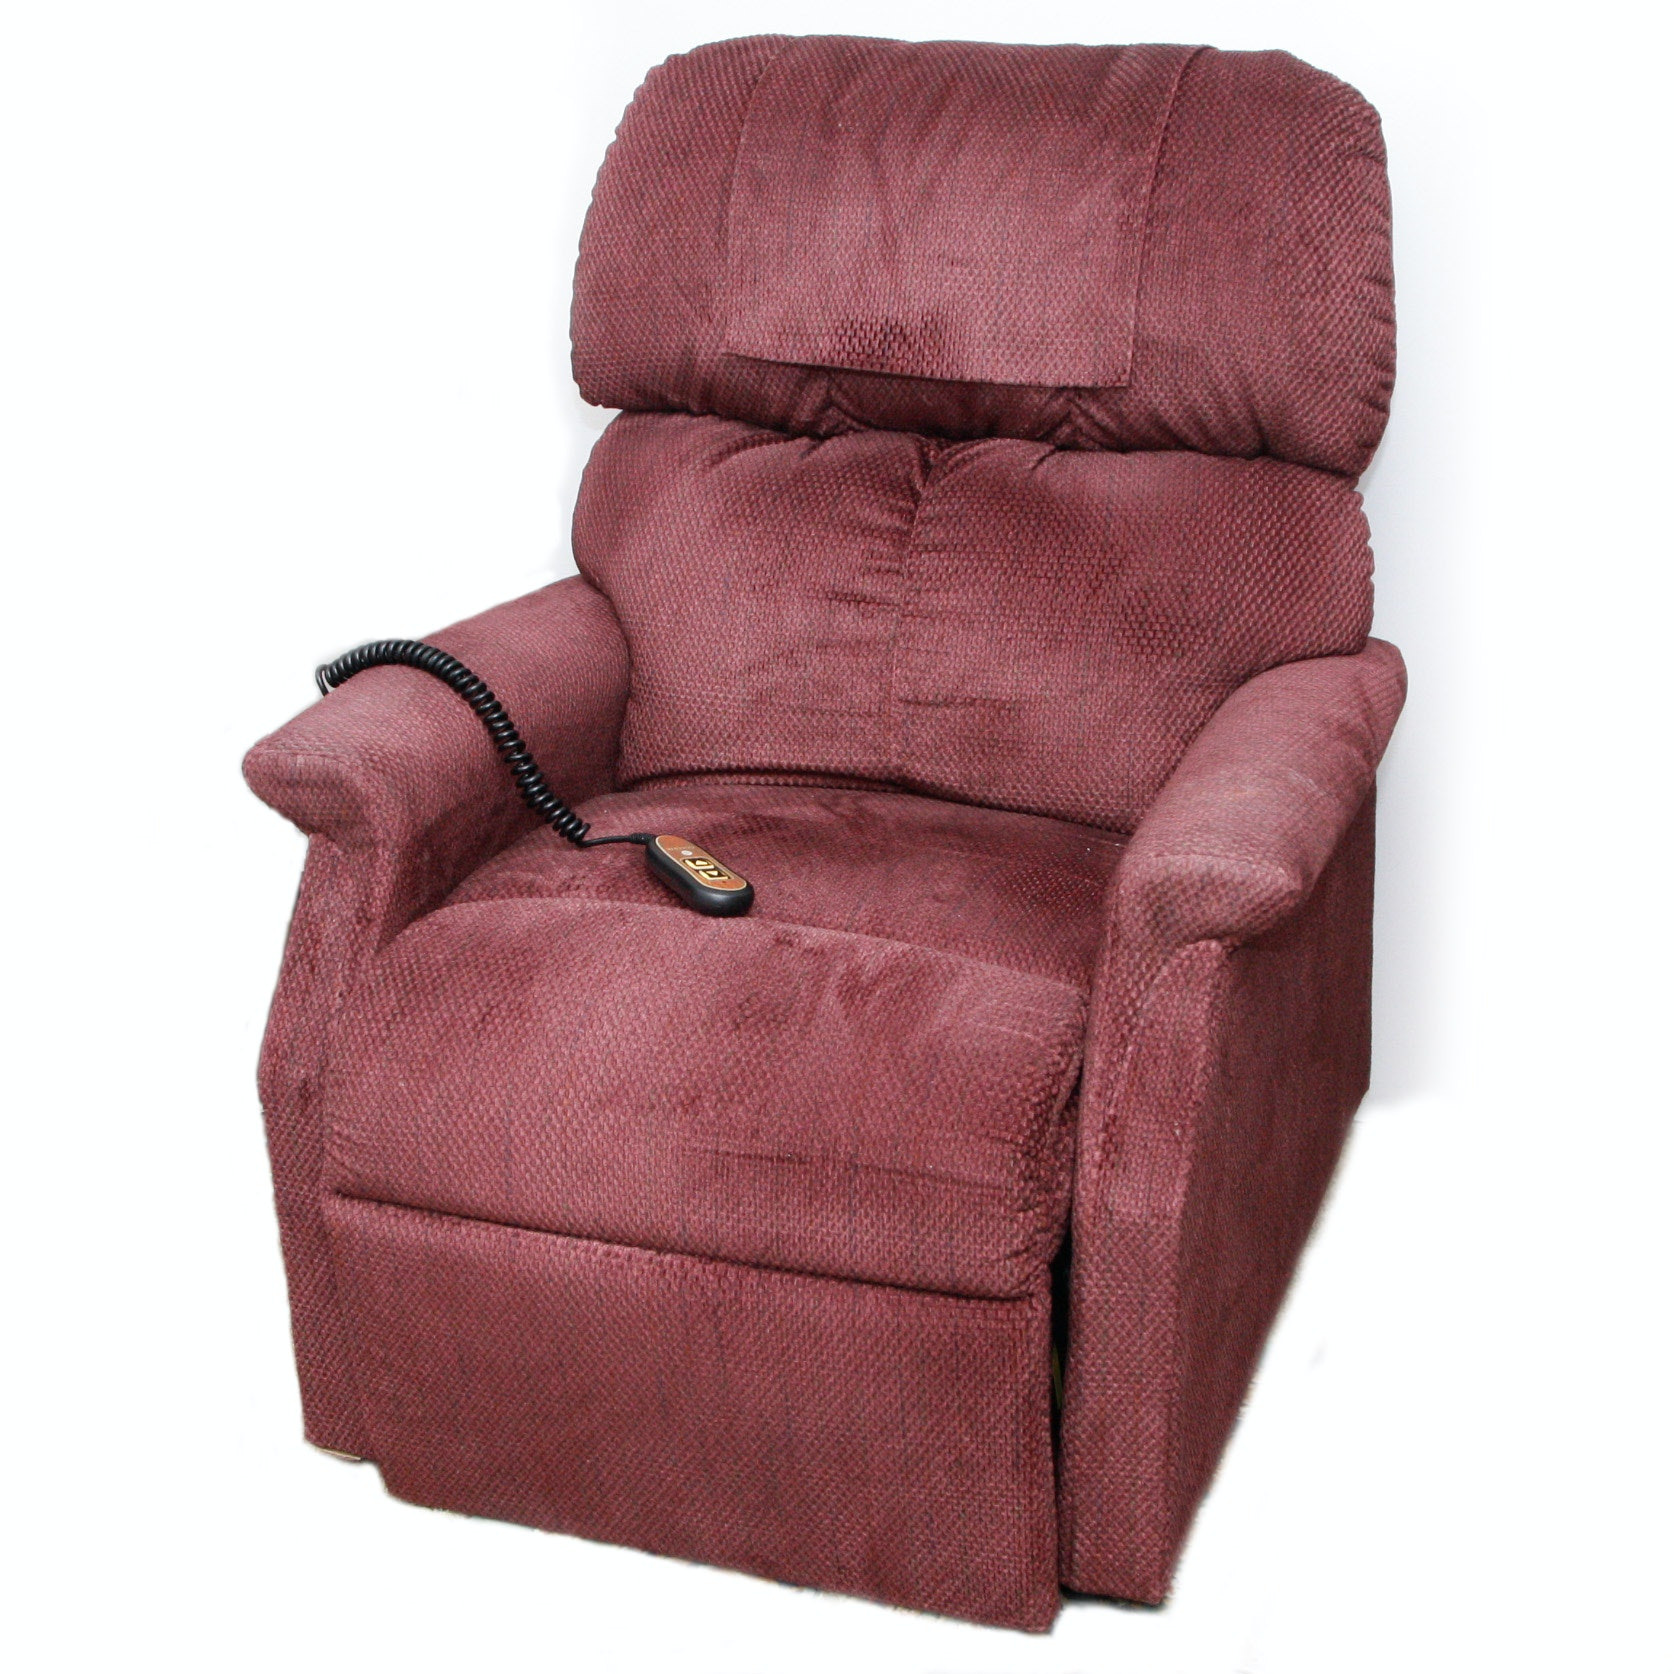 Golden Technologies Cabernet Power Lift Recline Chair ...  sc 1 st  EBTH.com & Golden Technologies Cabernet Power Lift Recline Chair : EBTH